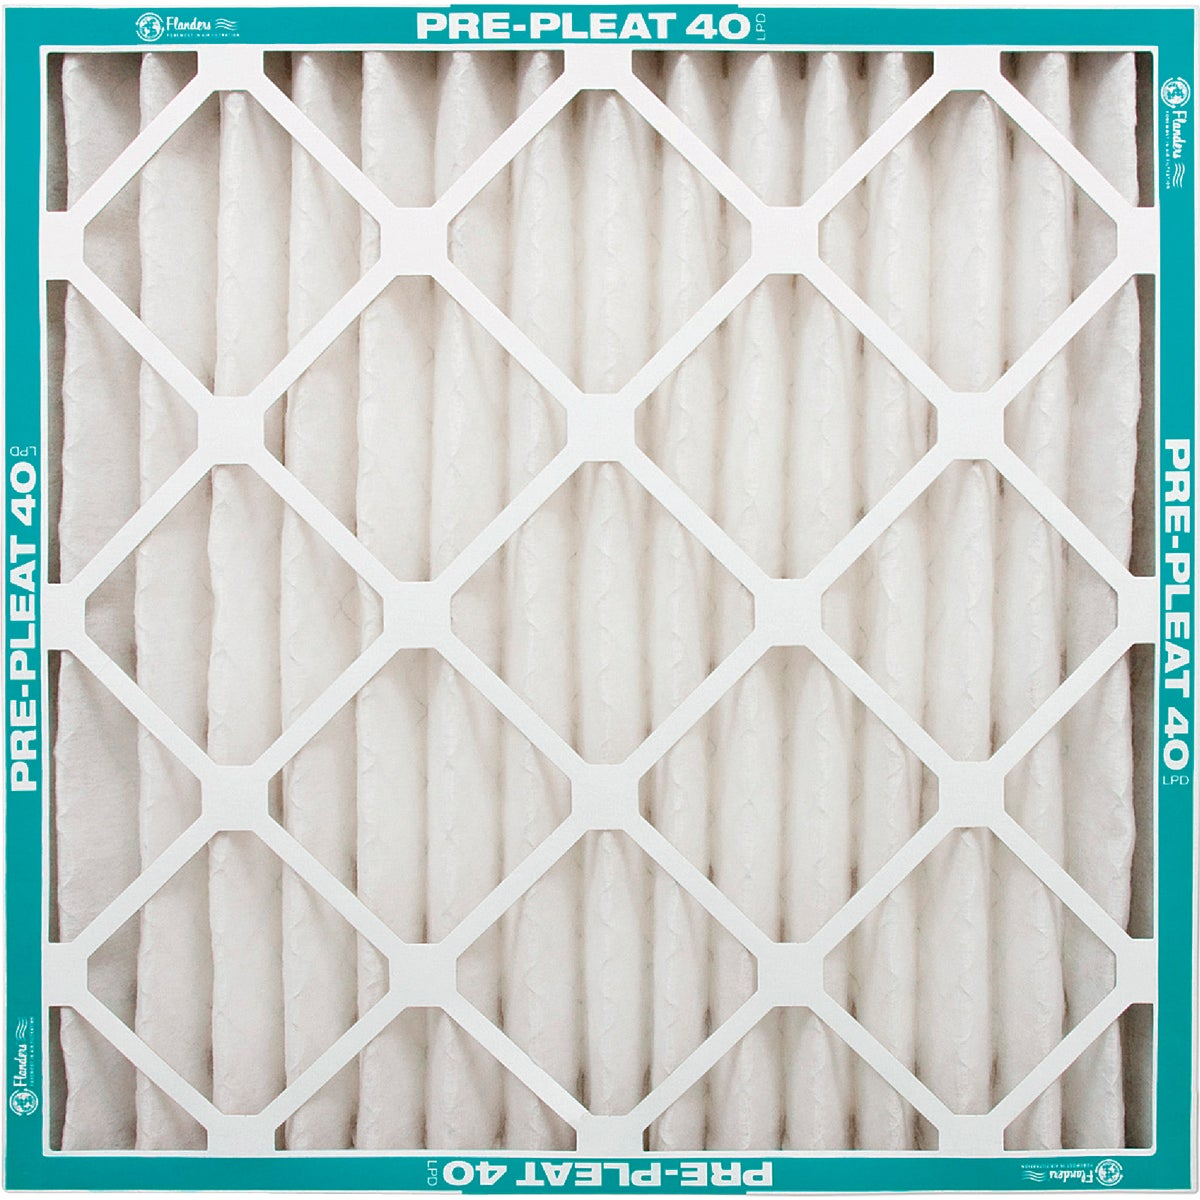 20X25X4 PLTD AIR FILTER - 80055.042025 by Flanders Corp